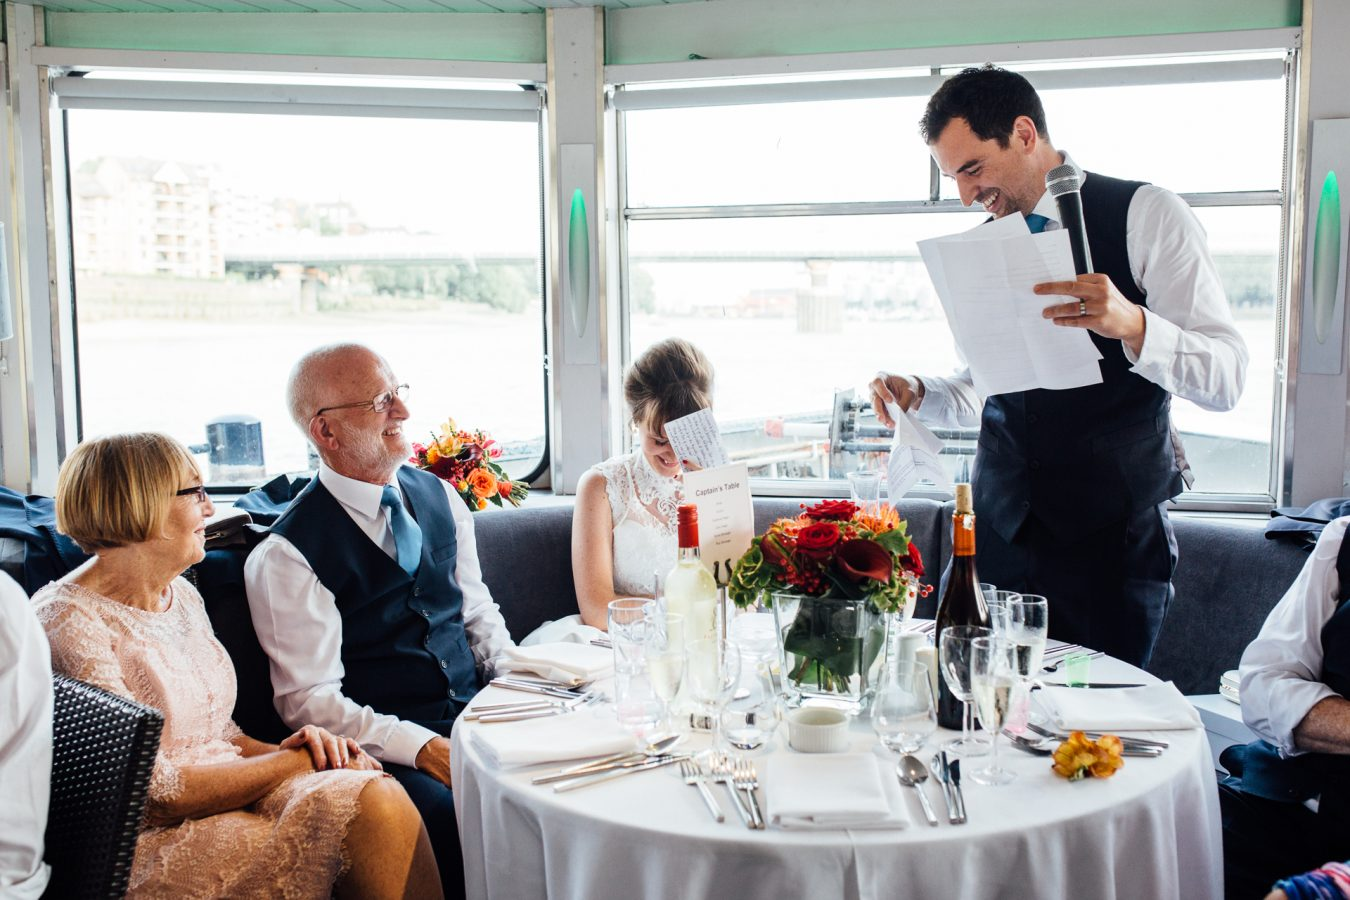 The bride and groom durring the speeches at a wedding reception on board the Erasmus luxury Thame by Kent wedding photographer Matilda Delves